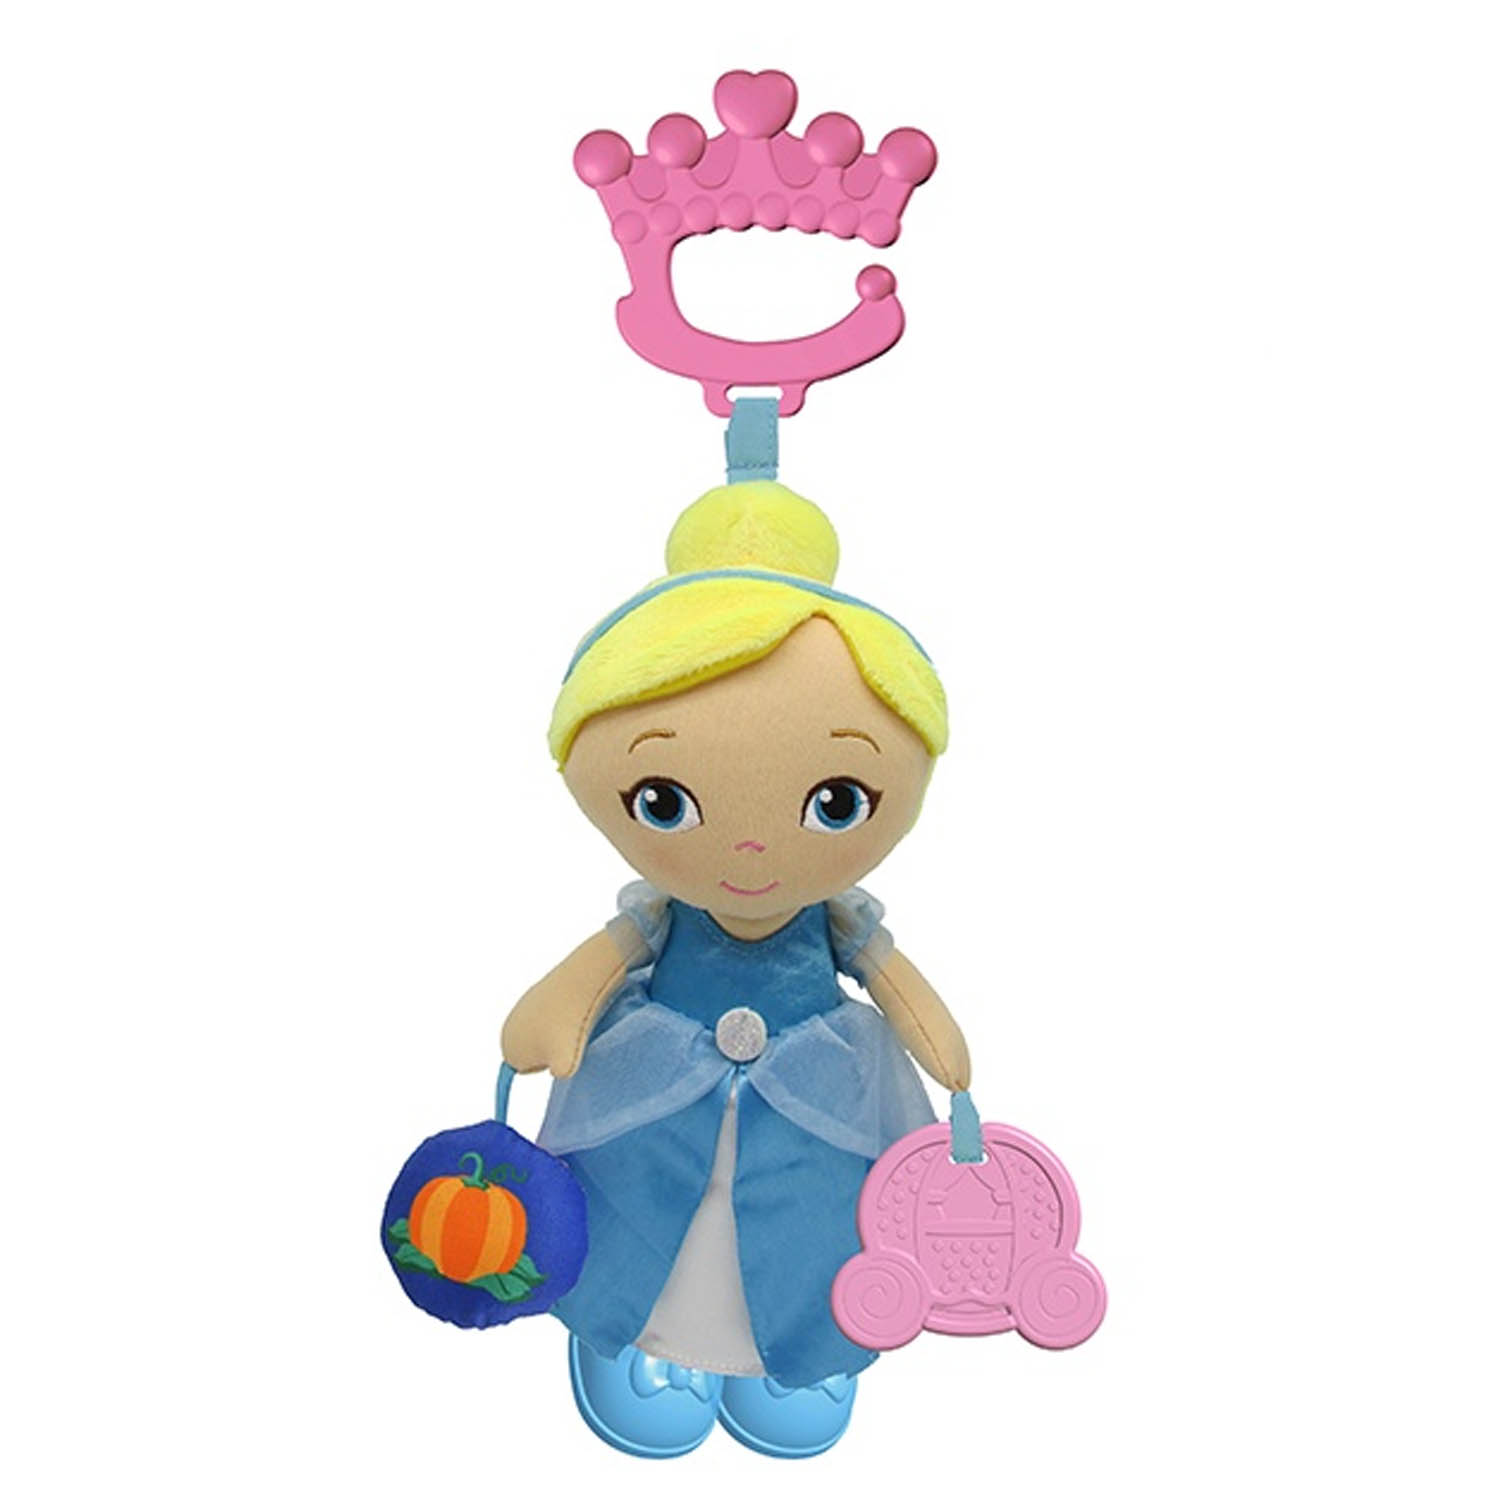 Disney Baby Disney Princess Cinderella Plush Baby Activity Toy - Click Image to Close